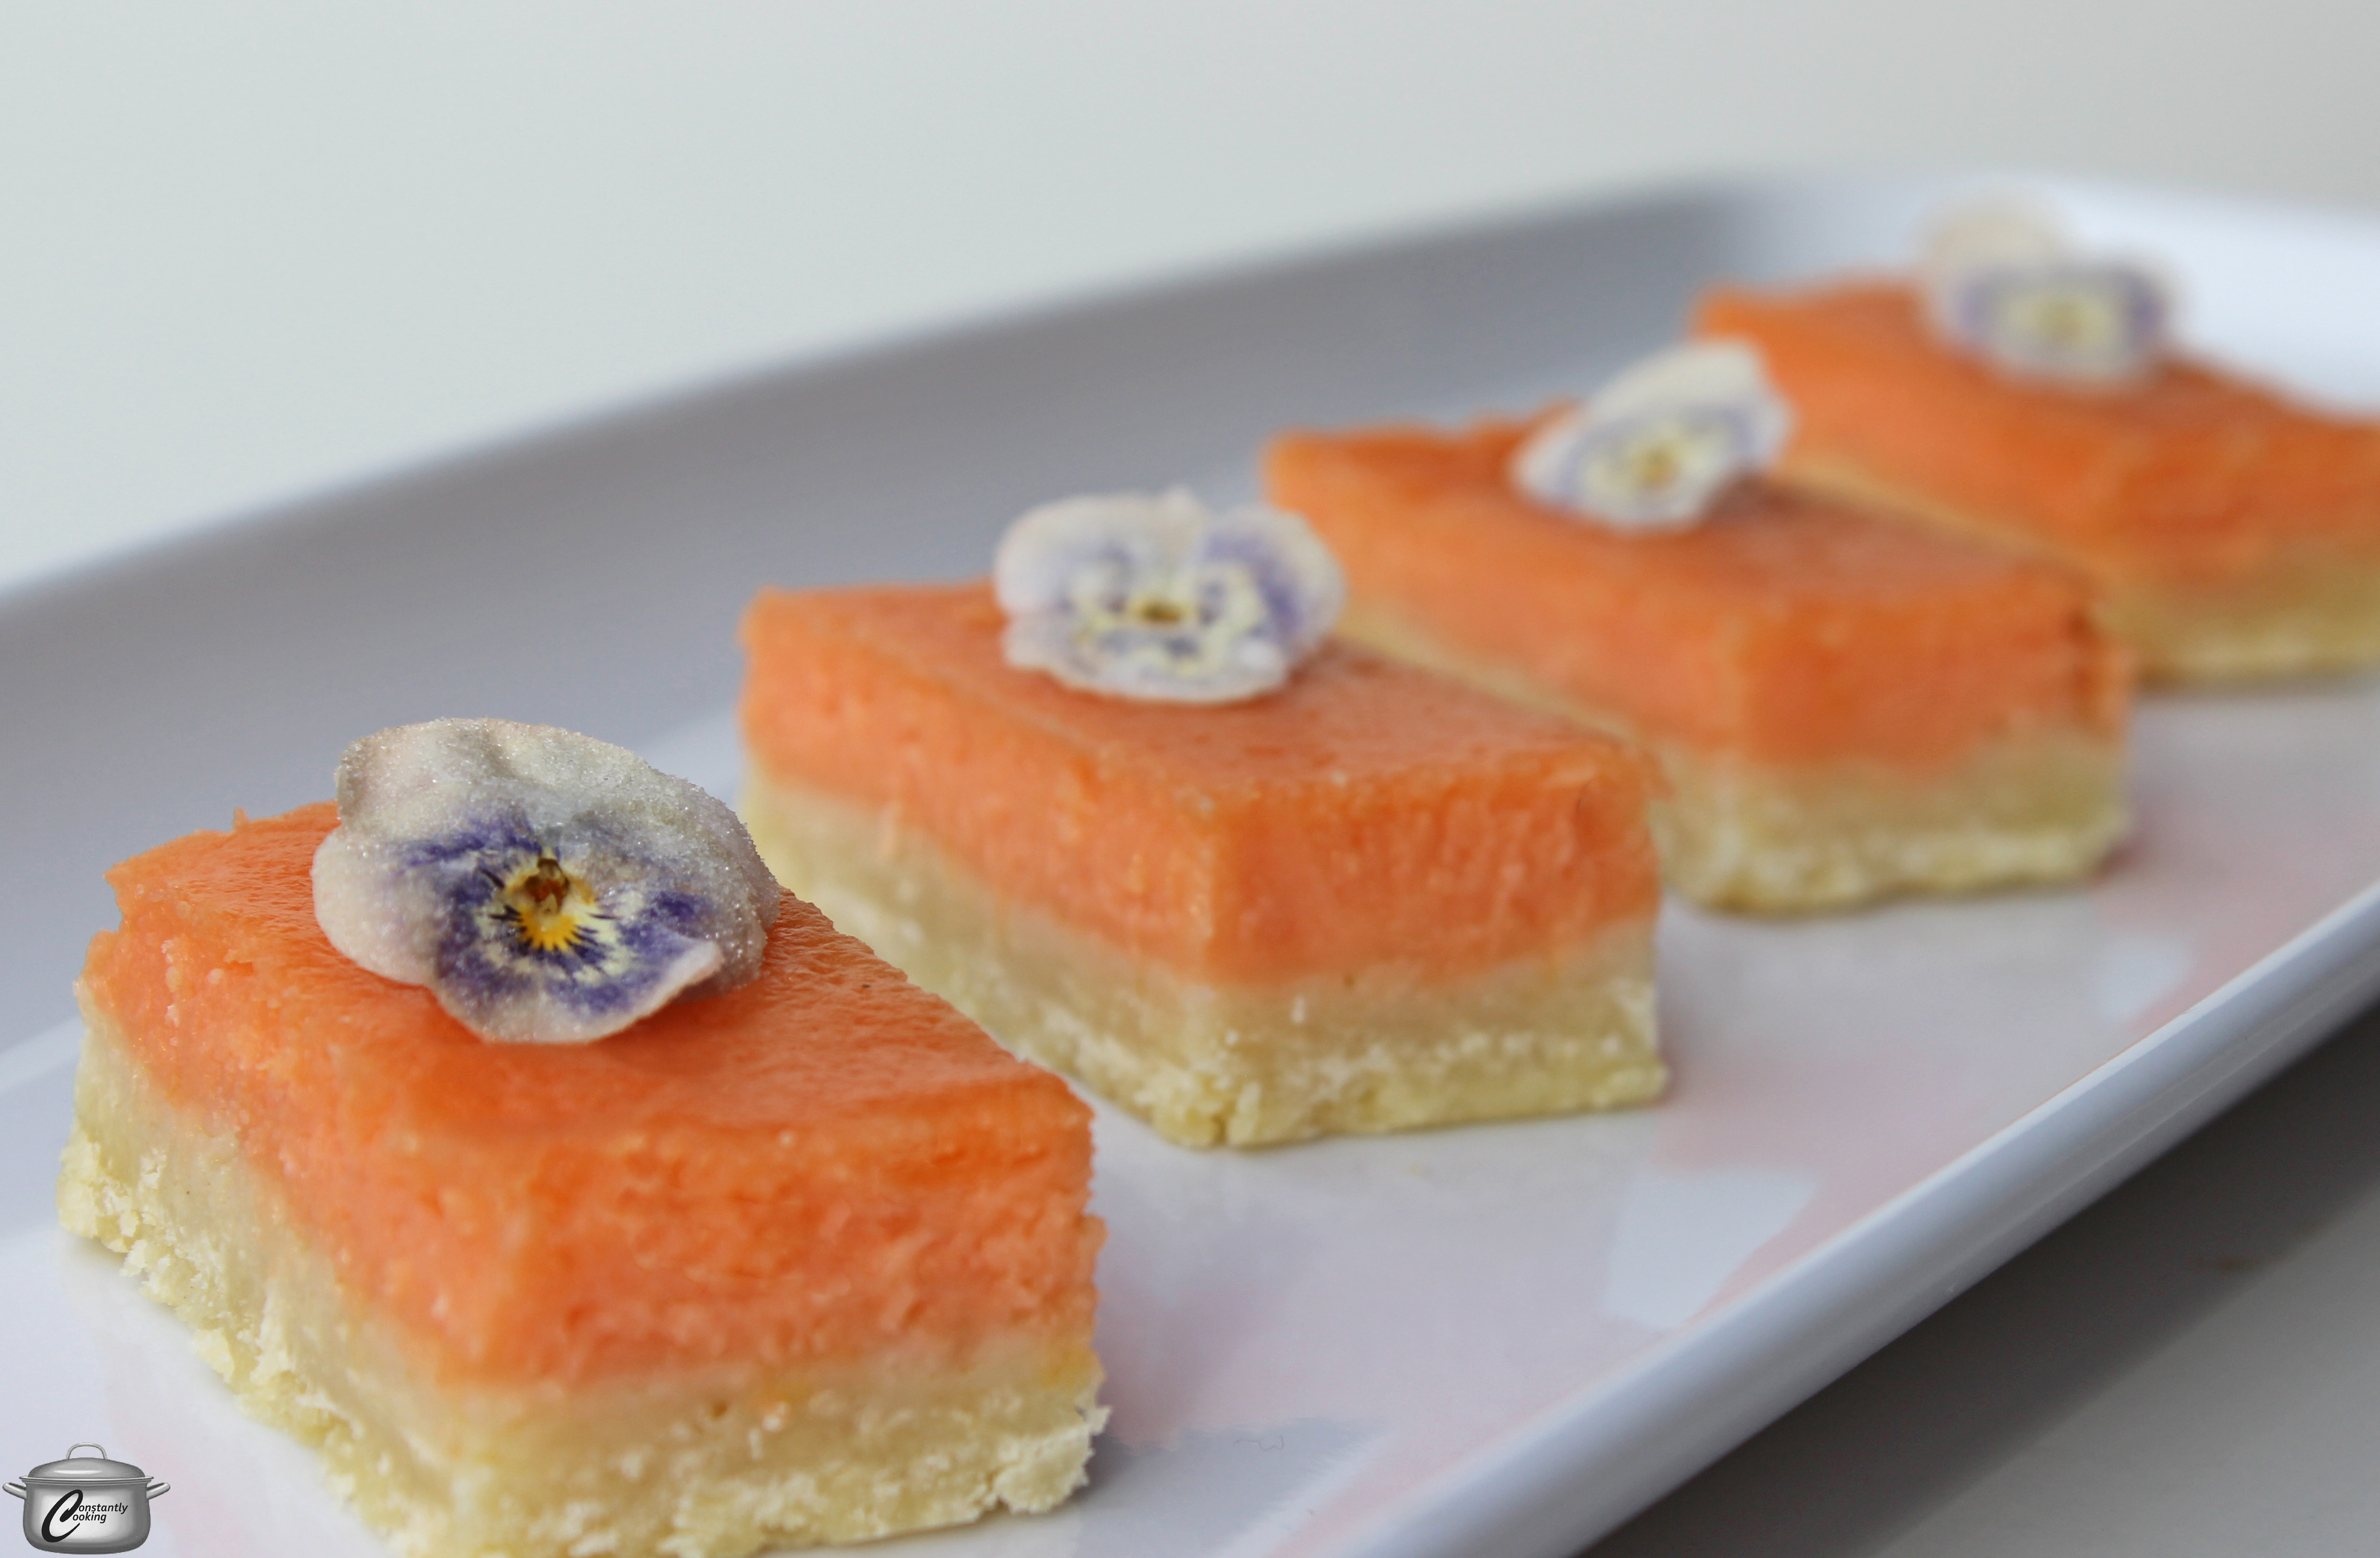 Tangy grapefruit and vanilla custard layered over a shortbread base make for a truly delicious dessert